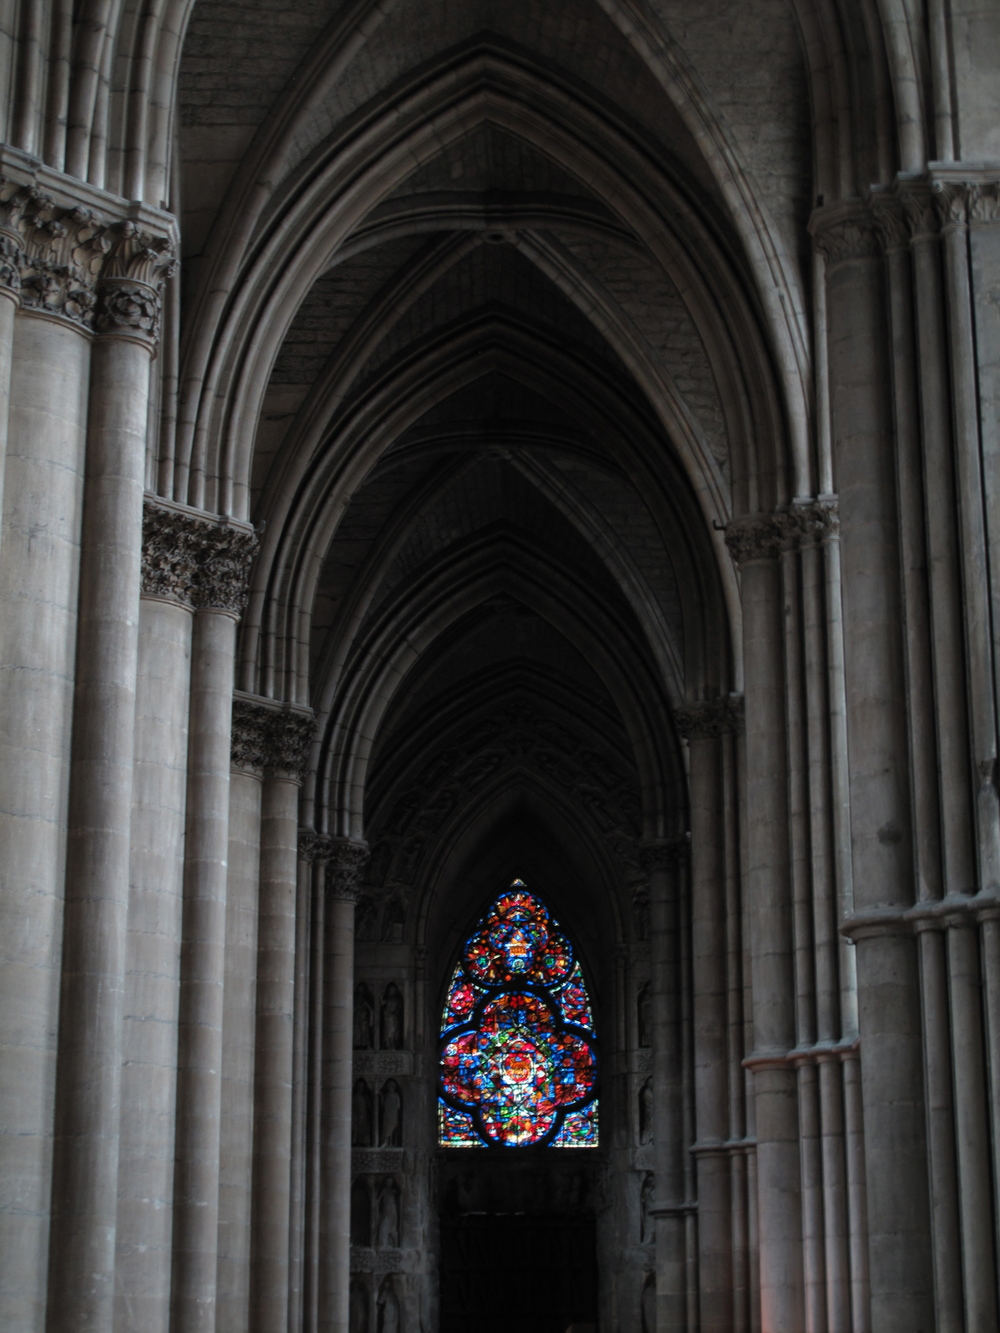 Shadows and light in Reims Cathedral - a perfect example of Gothic Architecture and the pointed arch.